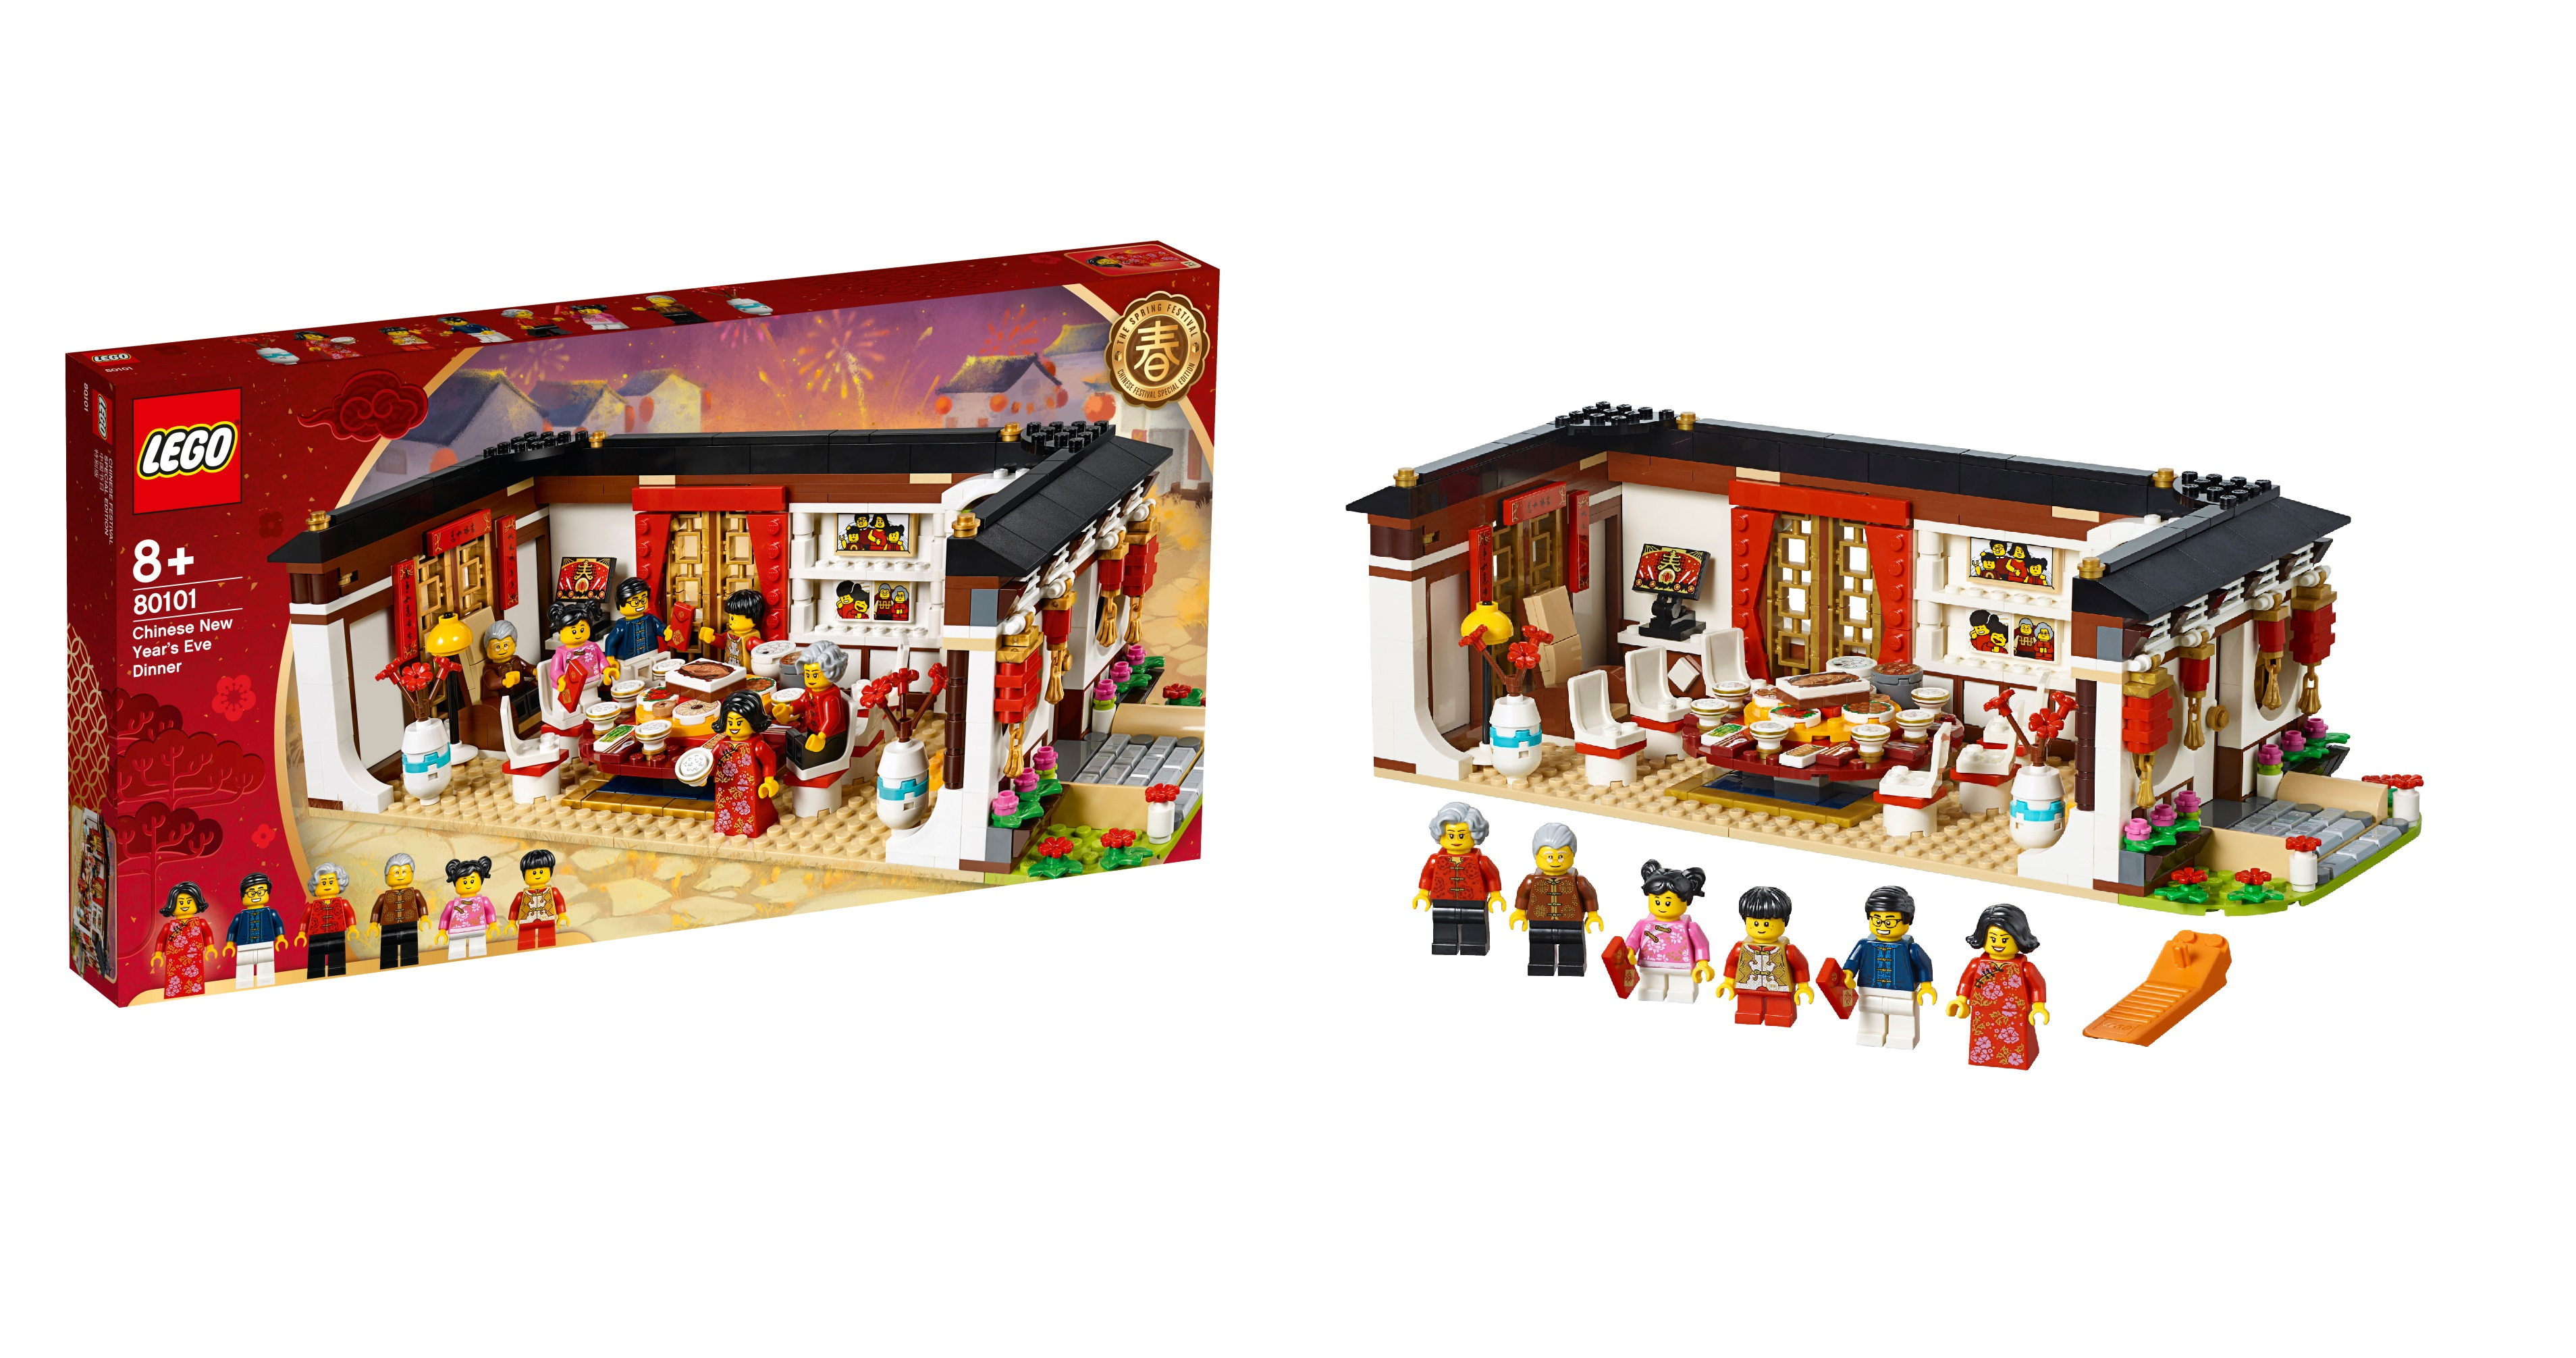 Lego Chinese New Year 2019 Sets Coming To Asia Pacific Australia Included Jay S Brick Blog